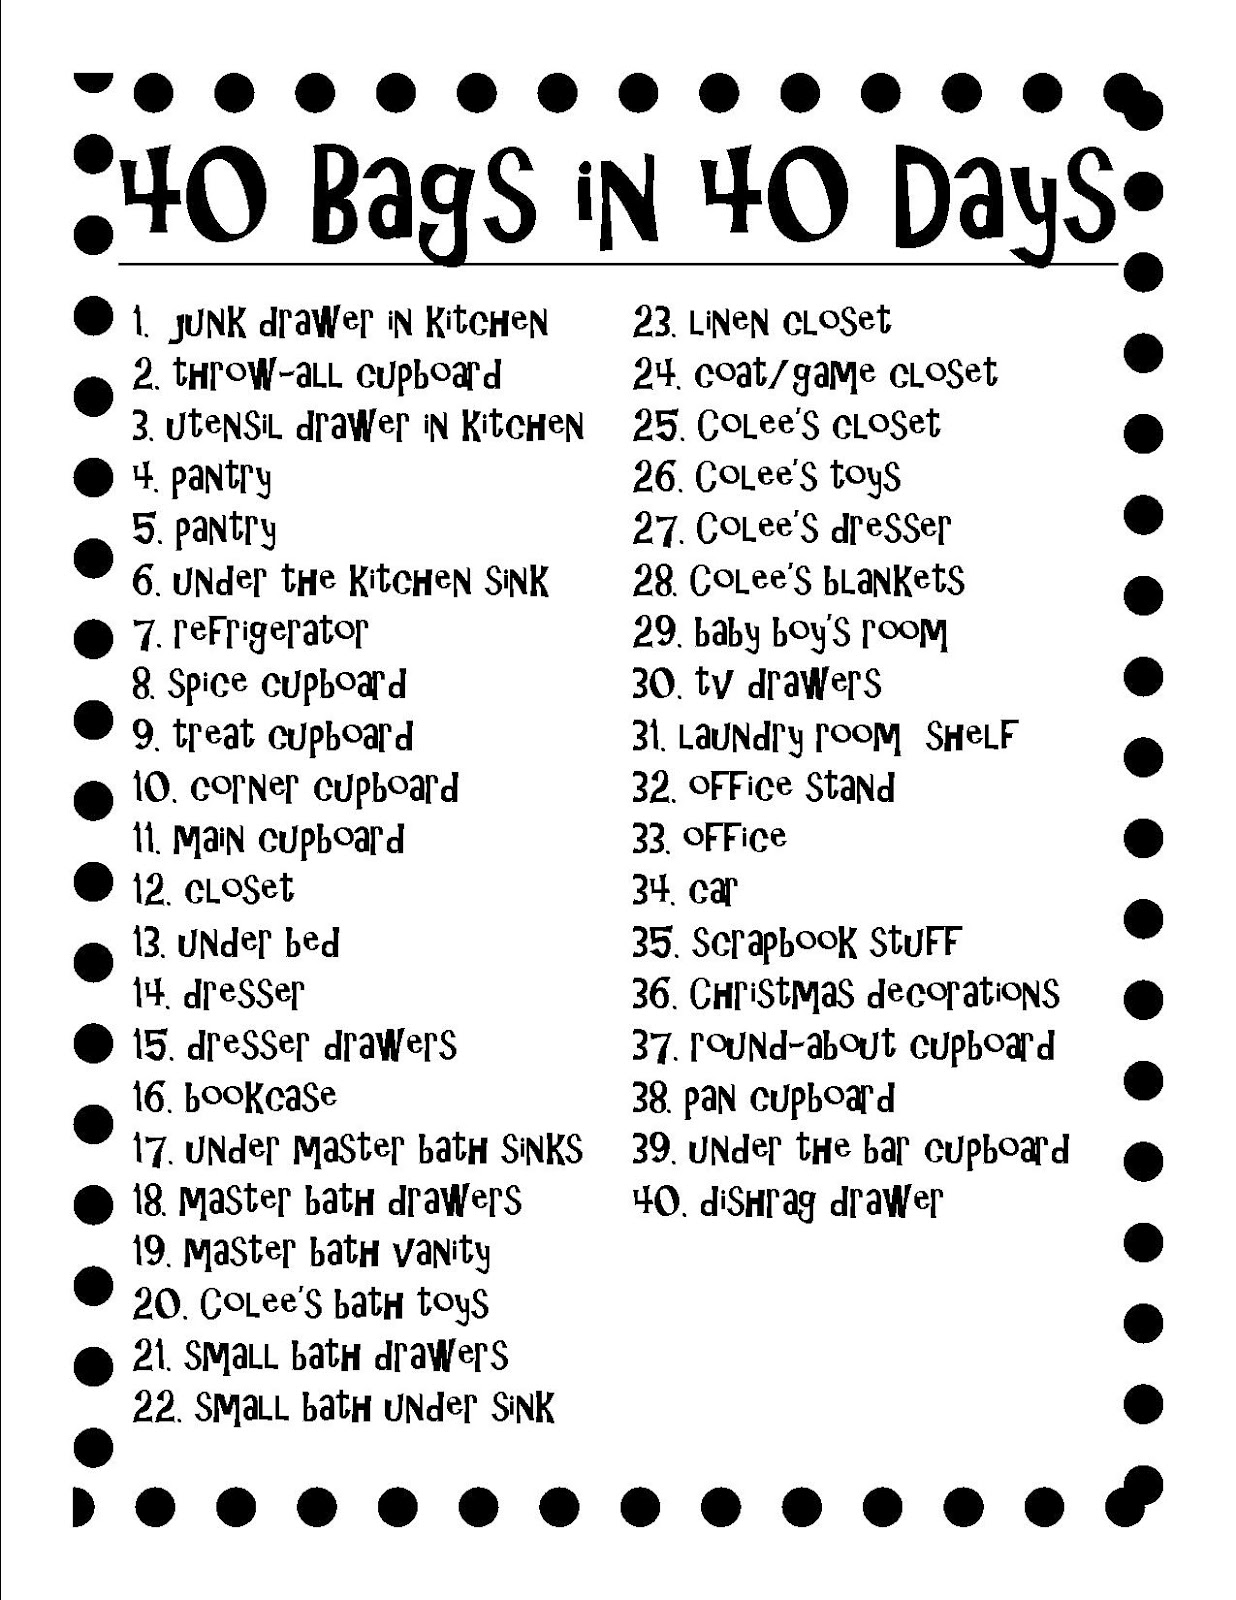 It is an image of Canny 40 Bags in 40 Days Printable